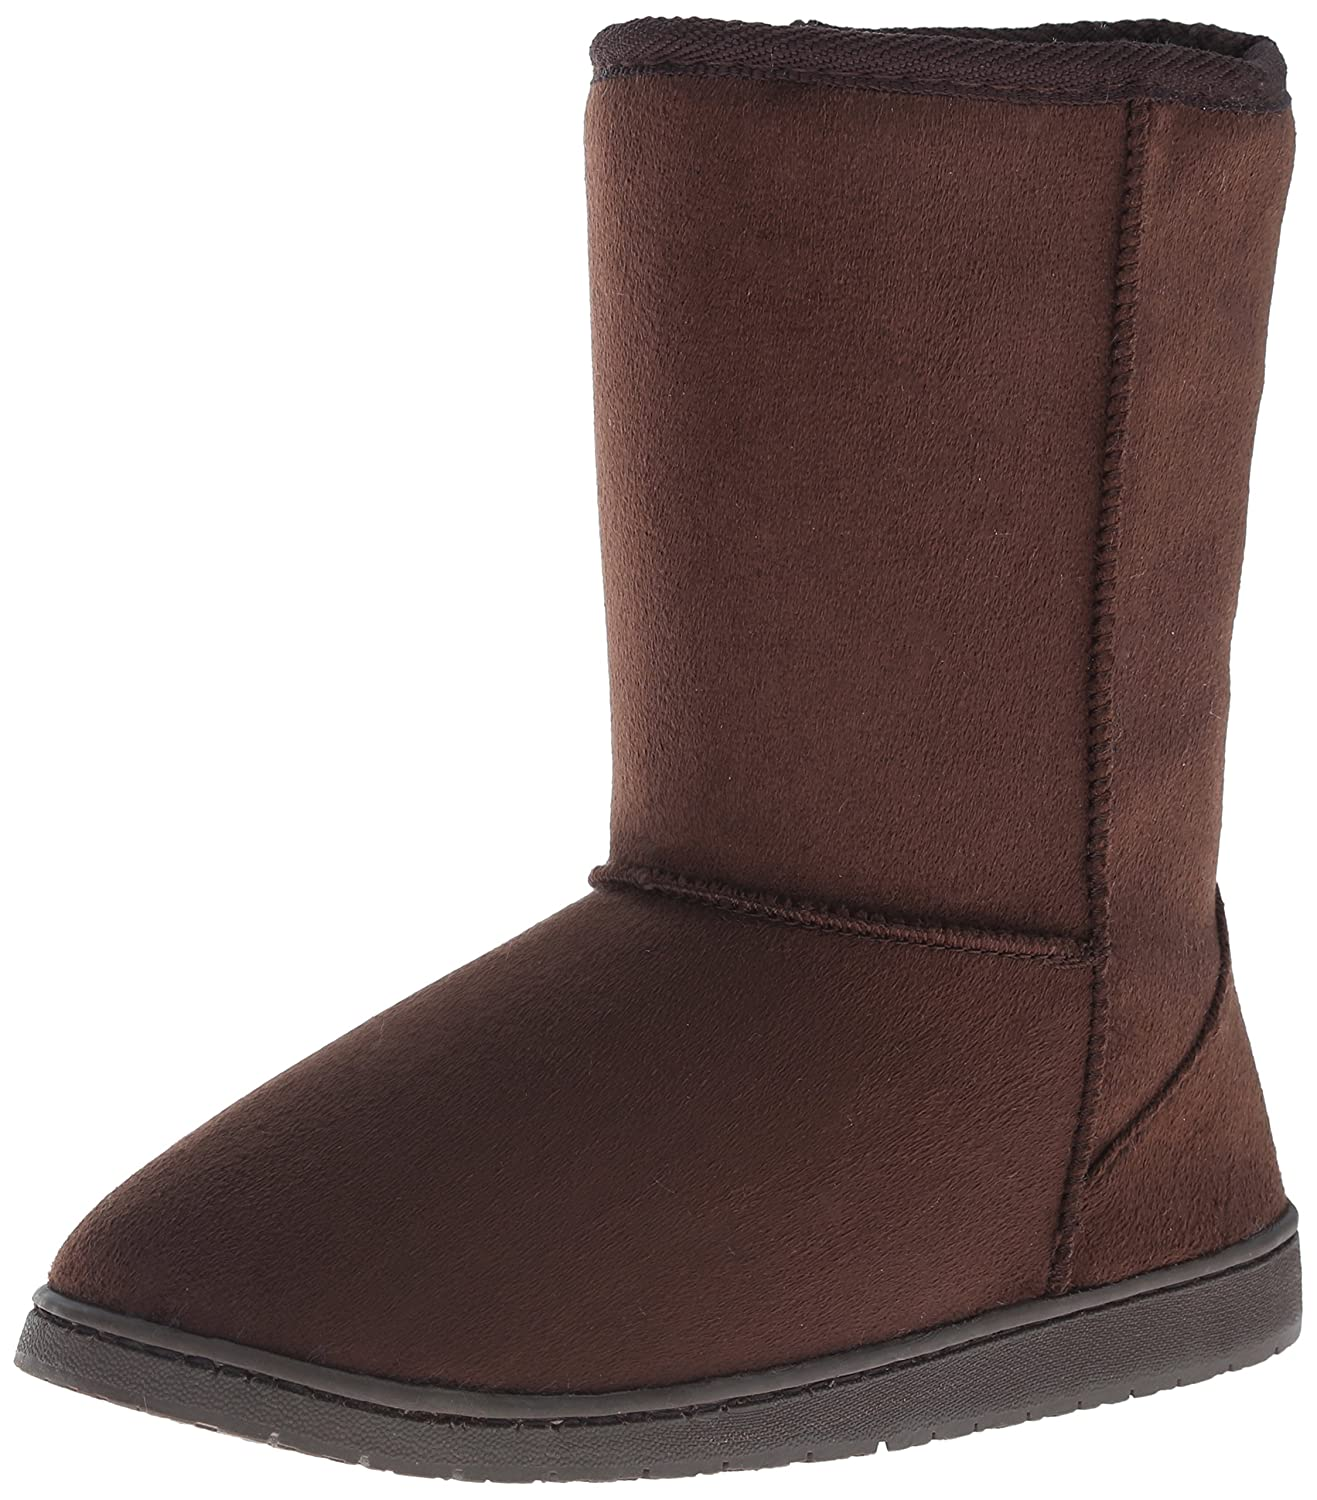 DAWGS Womens 9 Inch Faux Shearling Microfiber Vegan Winter Boots B001M5GXK8 10 B(M) US|Chocolate